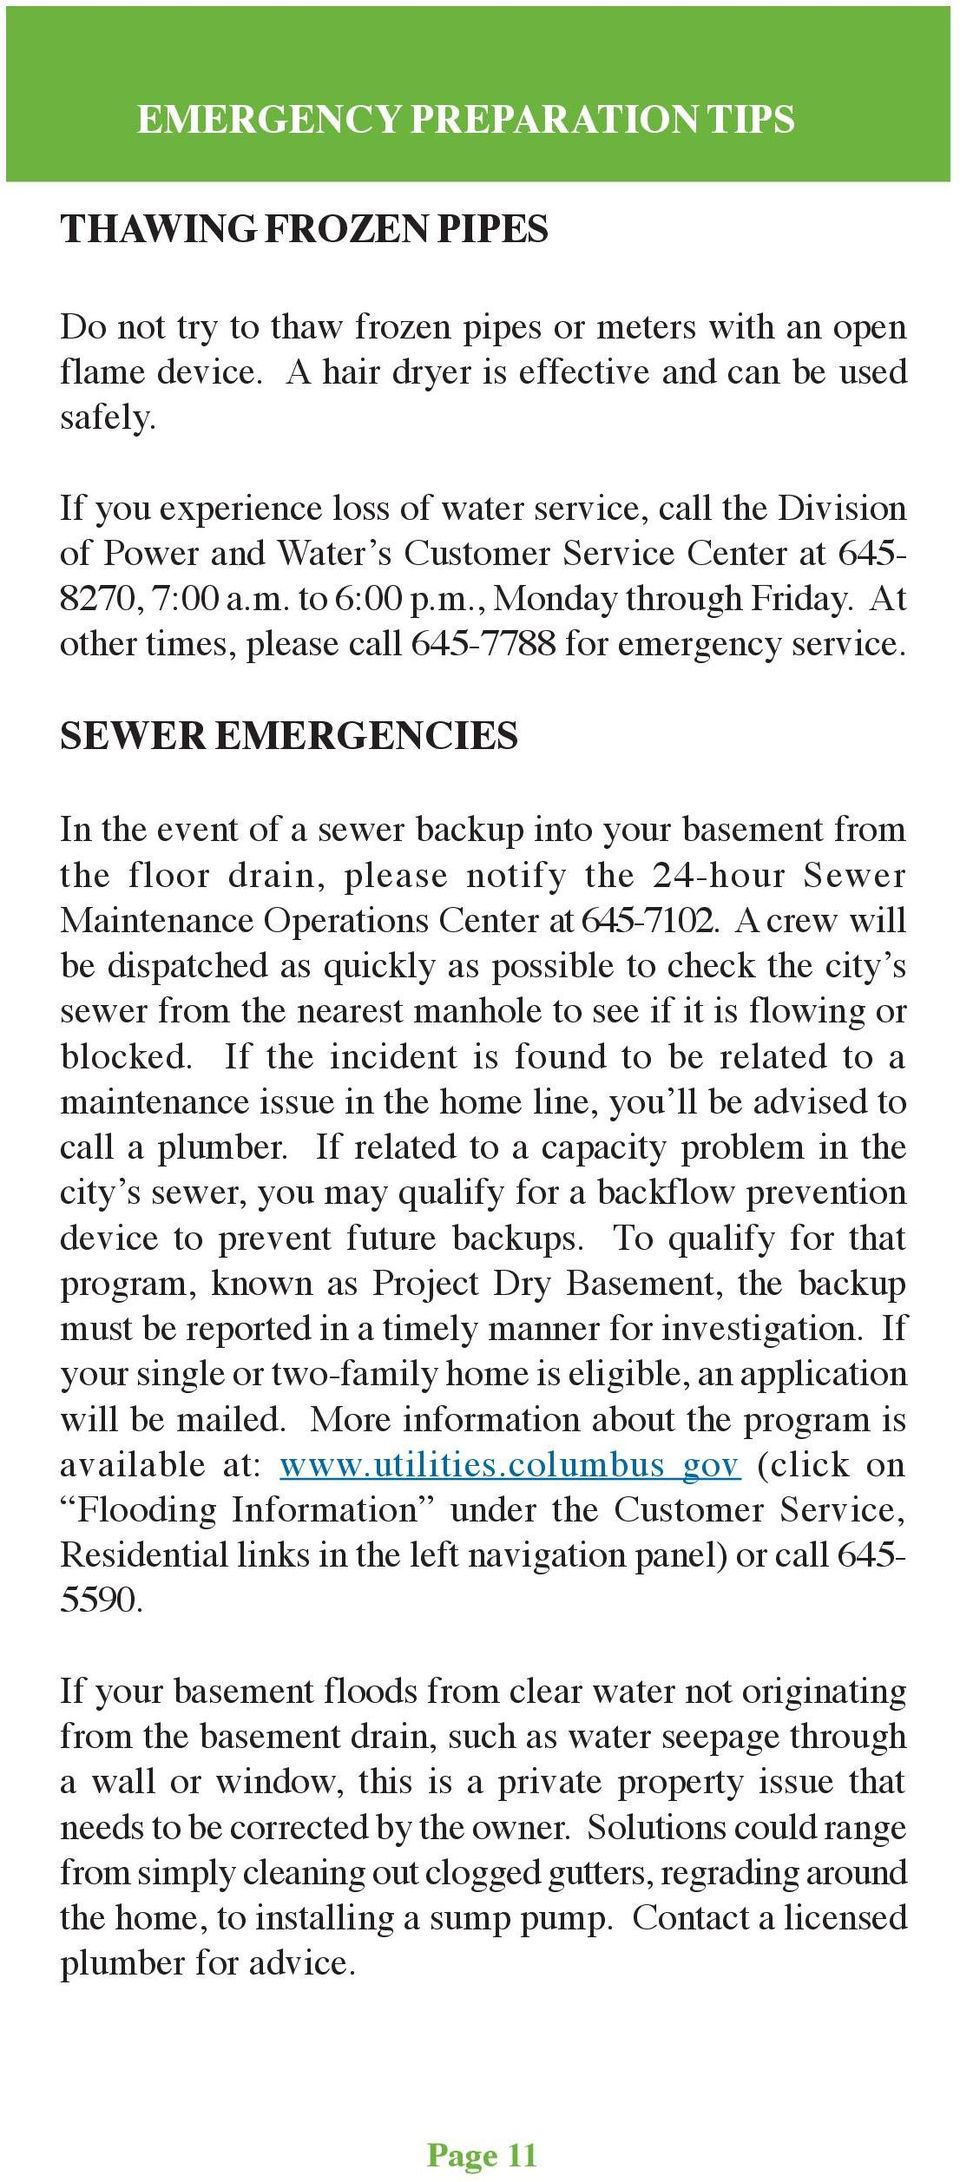 At other times, please call 645-7788 for emergency service.